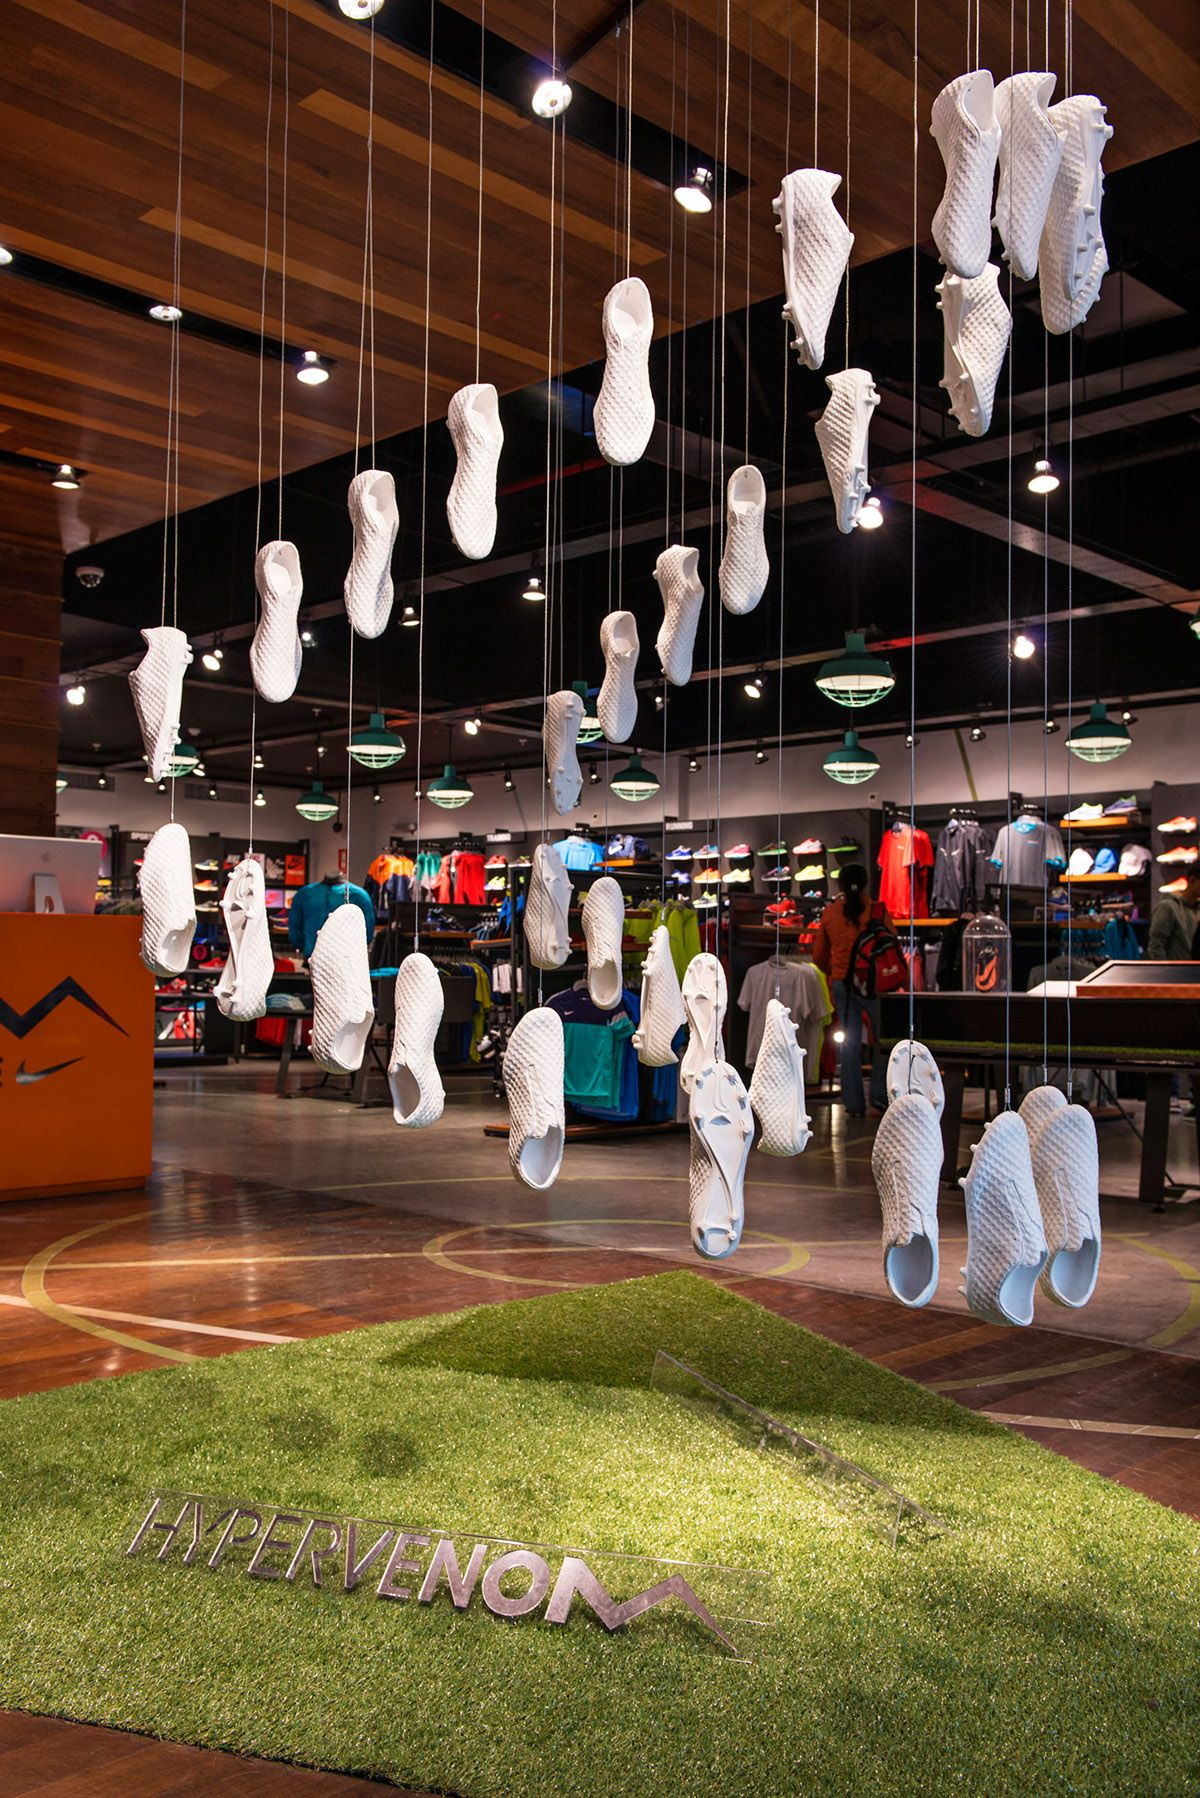 canto Cuota de admisión esperanza  Resin and glass fiber soccer shoes installed as an open jaw in Nike store  located in Lima, Peru | Nike, Soccer shoes, Nike store